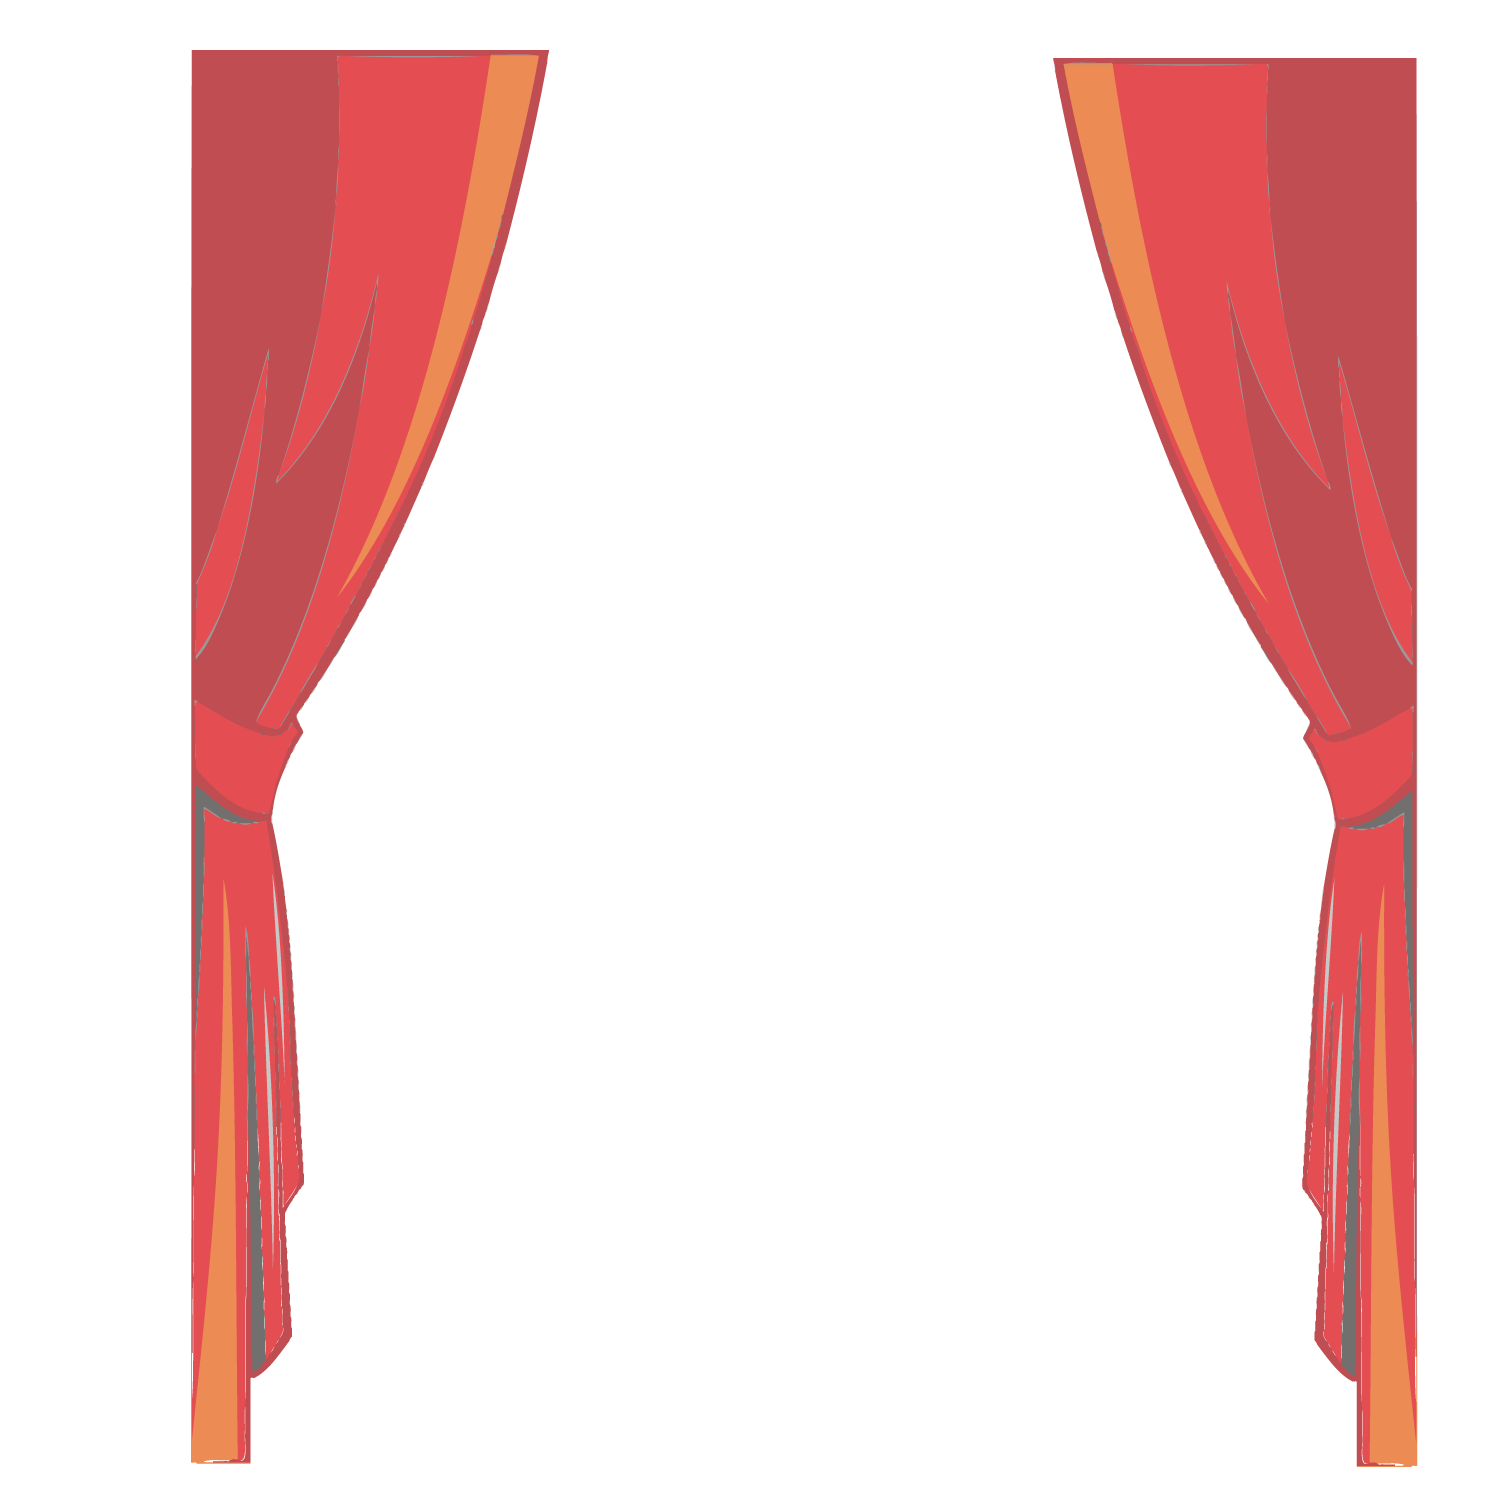 Stage transparent cartoon. Download red fine curtains